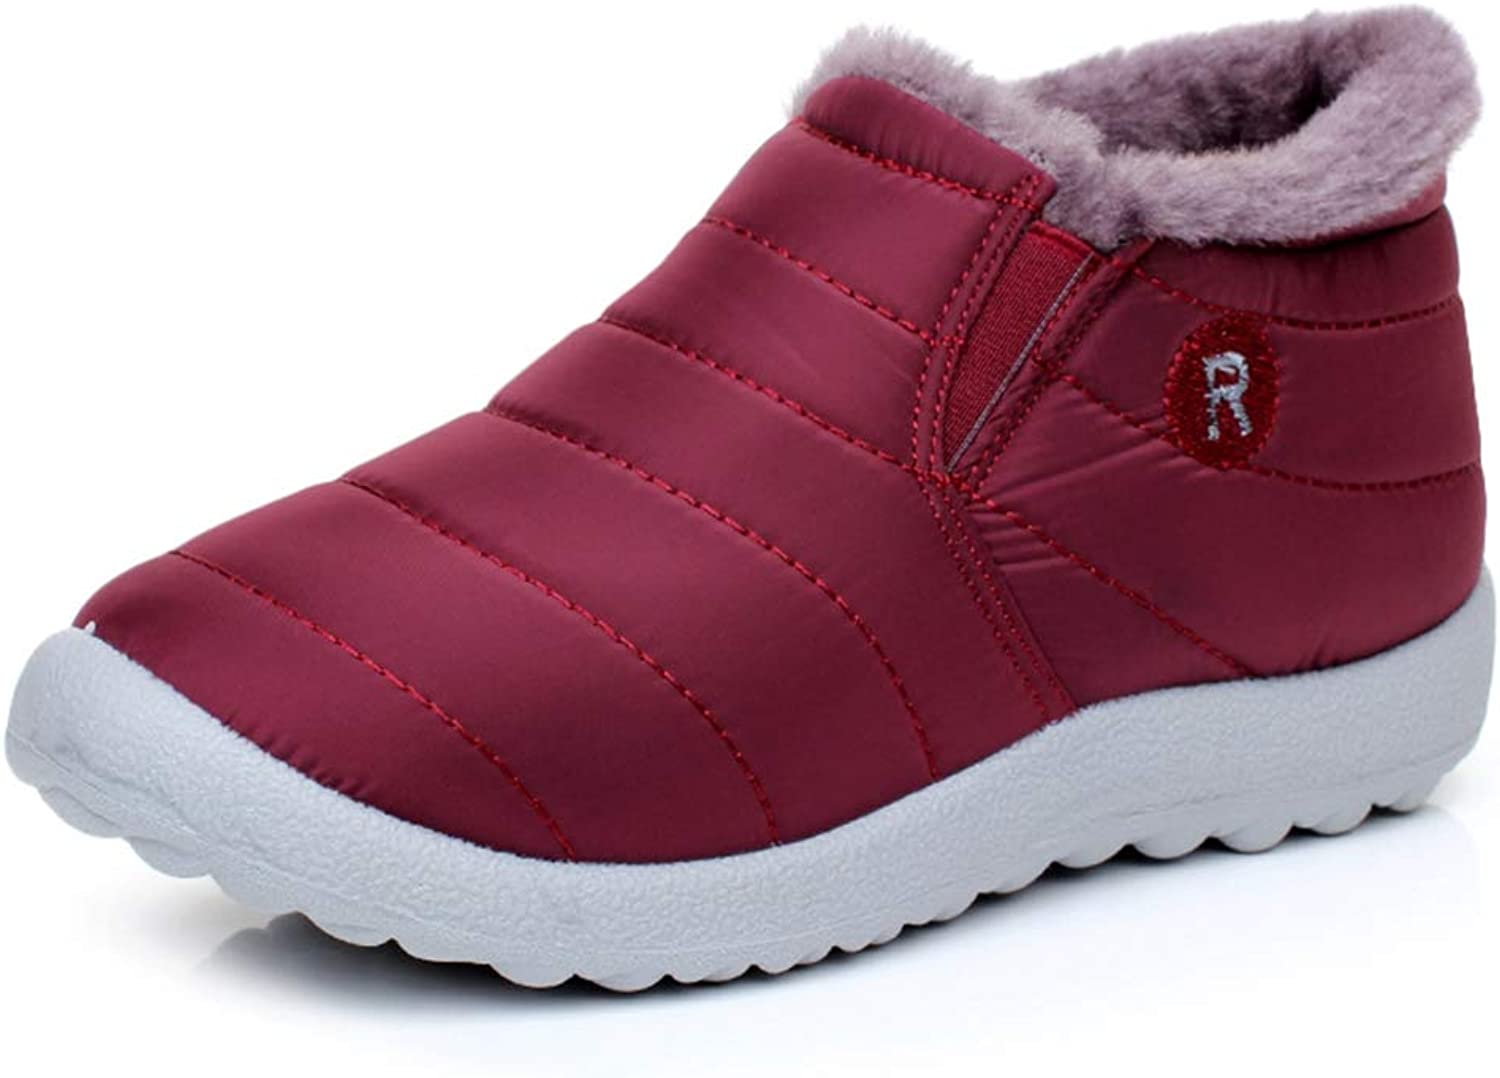 T-JULY Women Winter Warm Down Snow Boots Ankle Boots Fashion Waterproof Fur Antiskid Outdoor Flat Boots